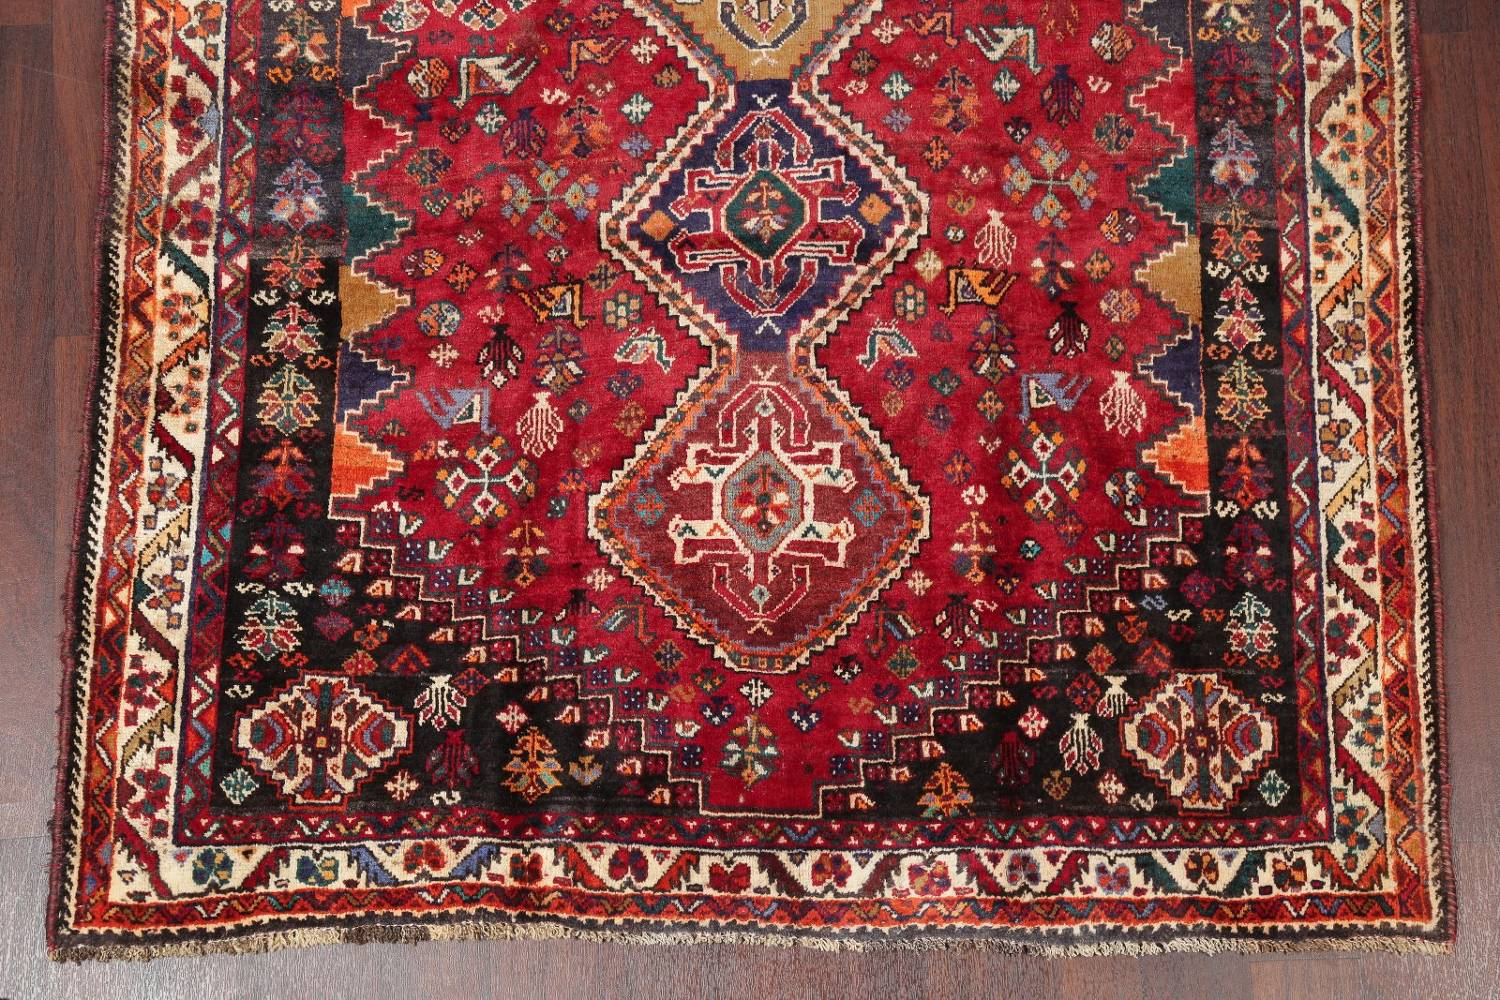 Antique Tribal Red Geometric Abadeh Persian Hand-Knotted 5x8 Wool Area Rug image 5